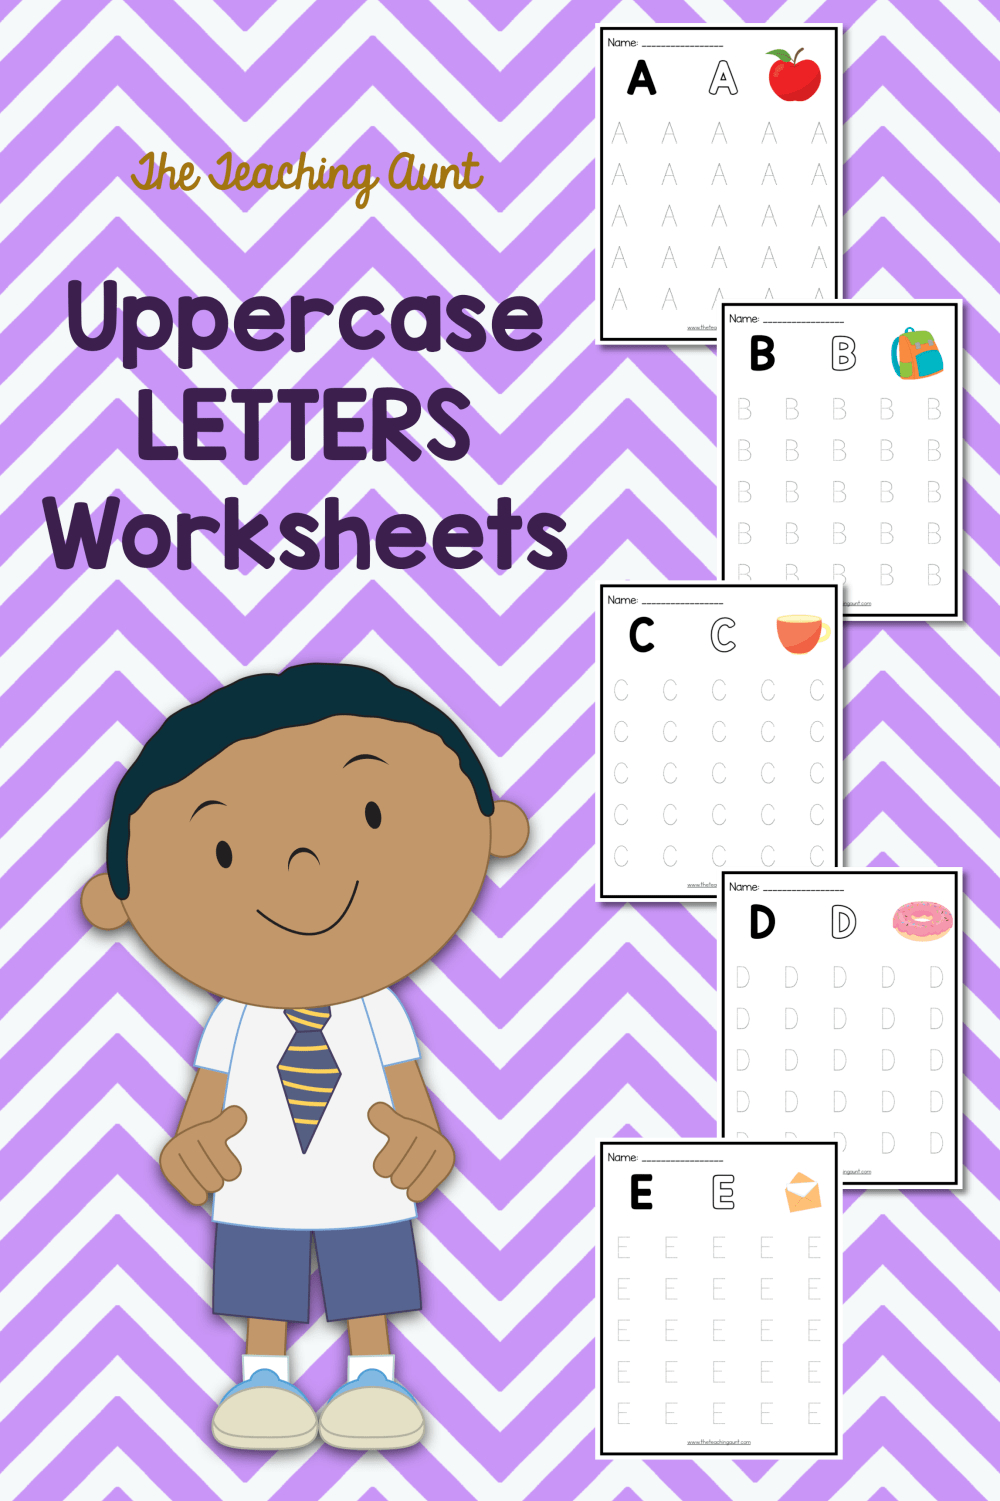 Uppercase Letters Tracing Worksheets - The Teaching Aunt in Letter Orientation Worksheets